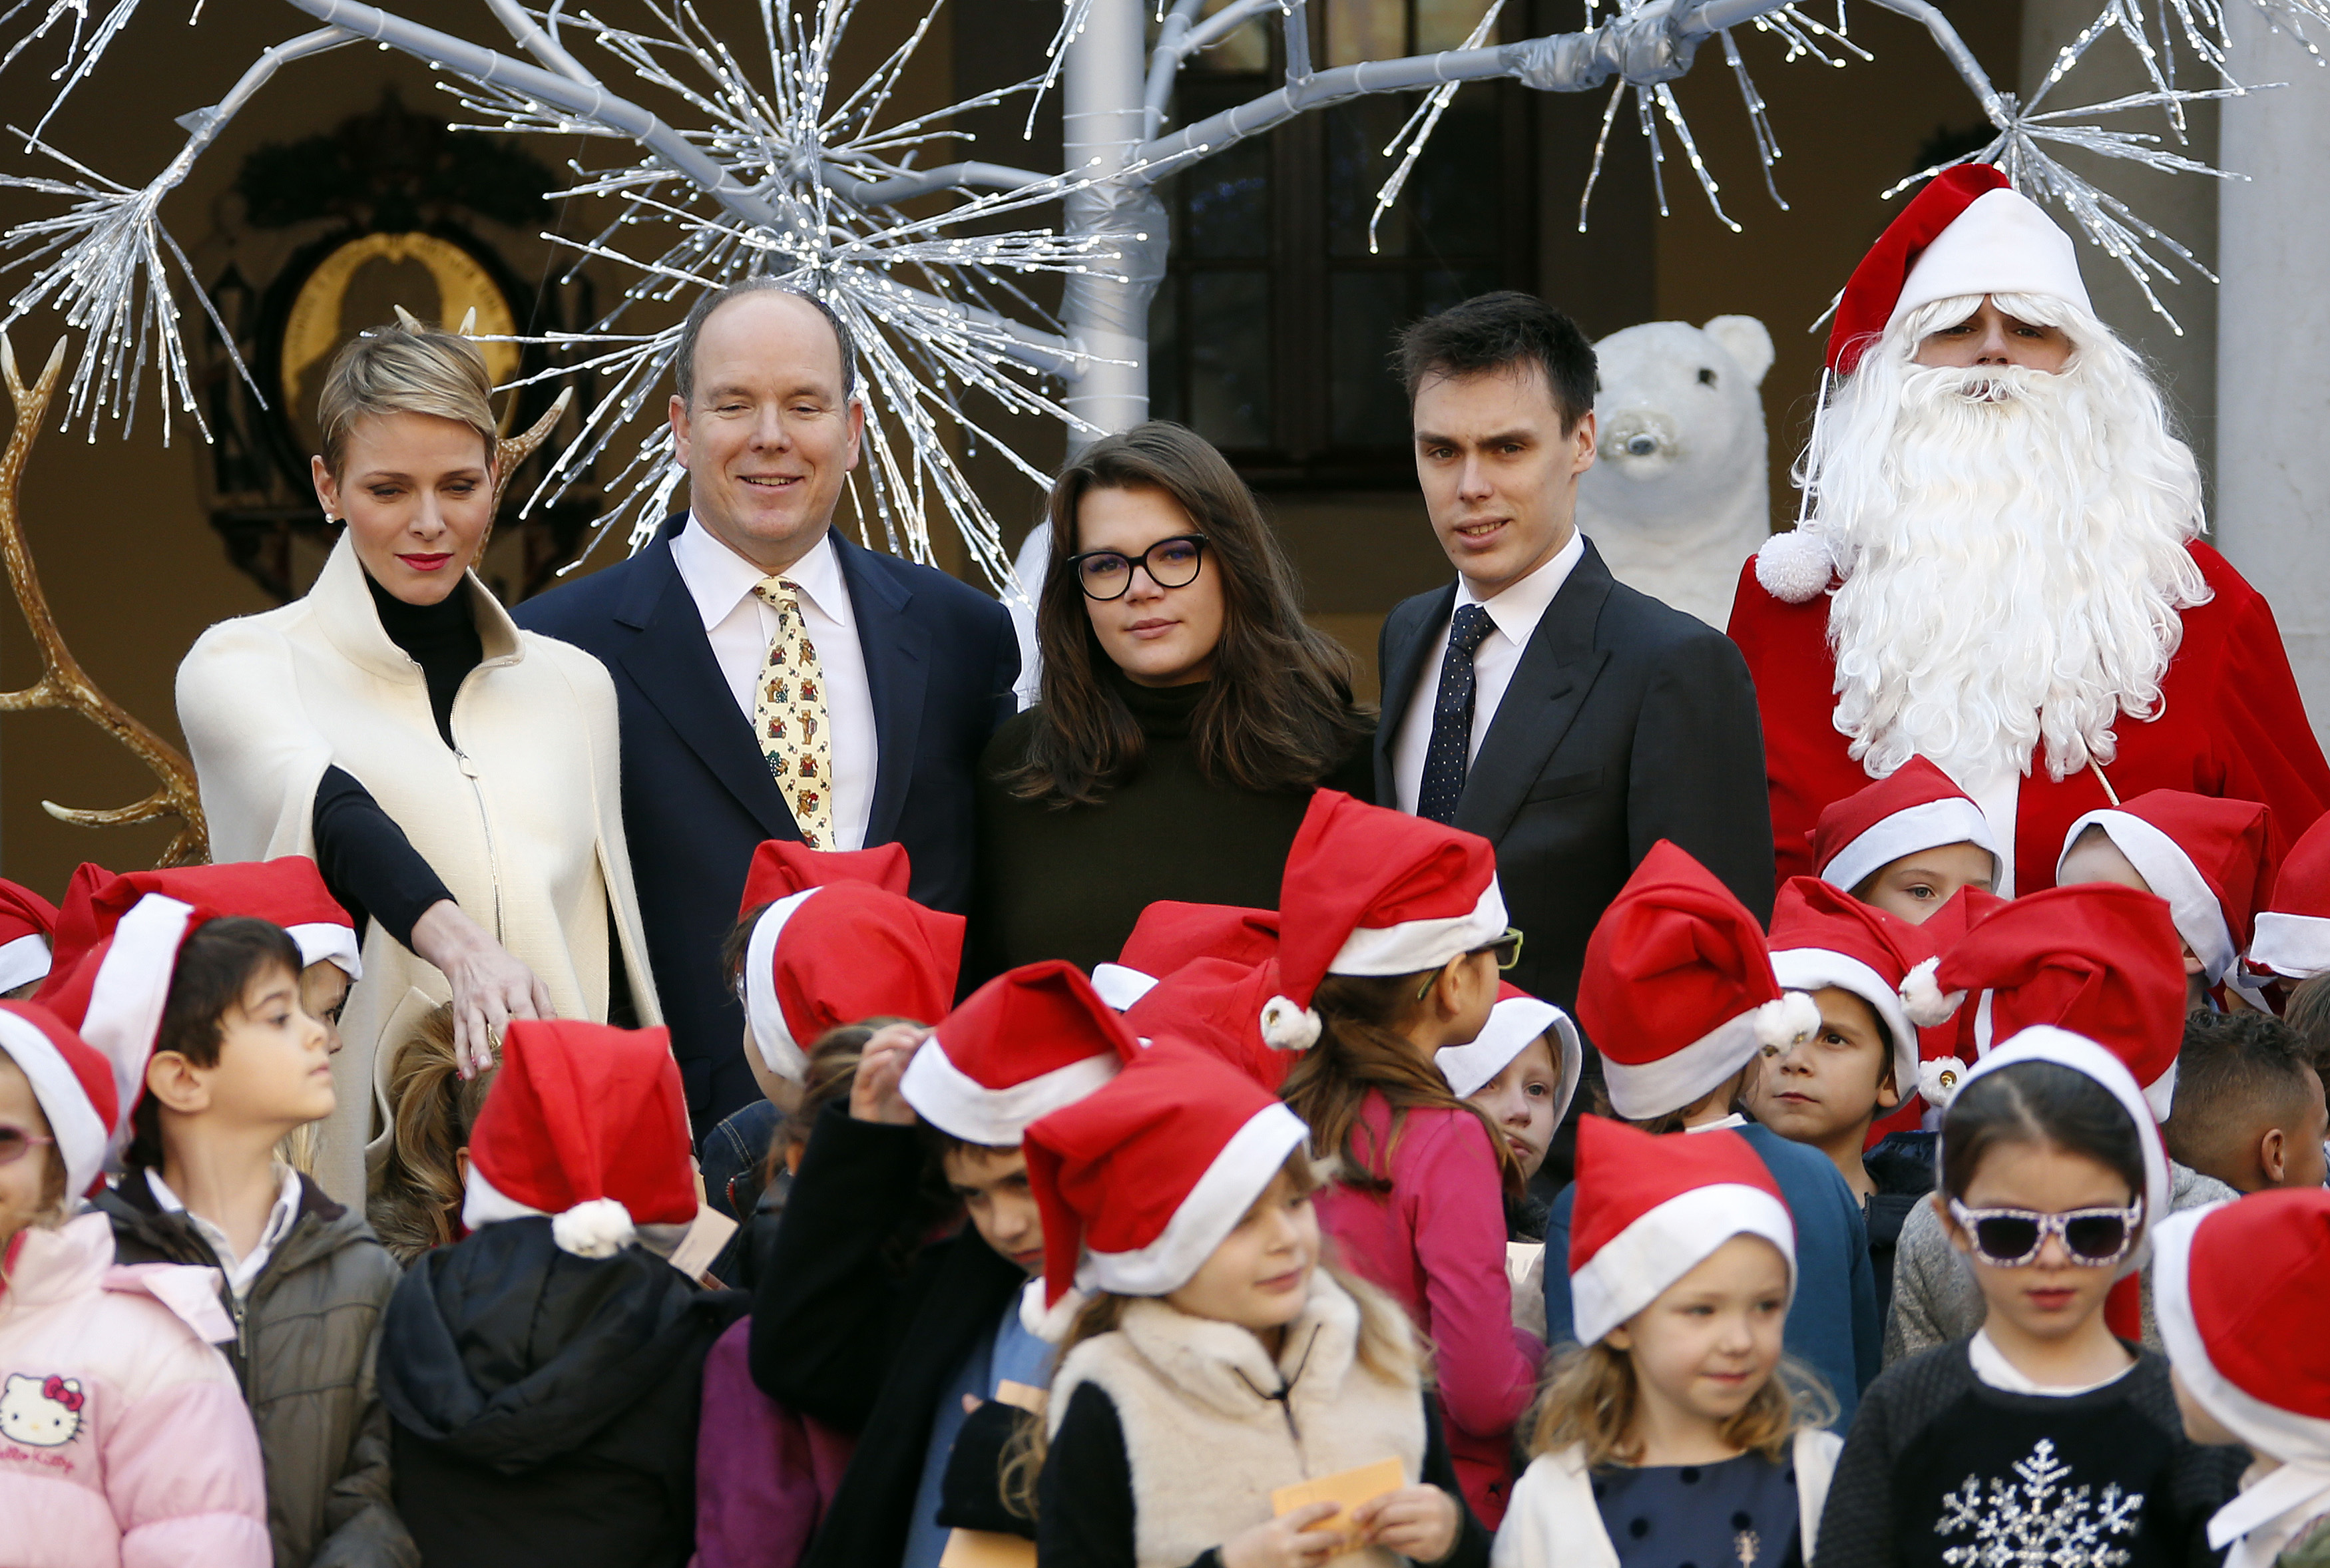 Monaco Royals Host Annual Christmas Party At Pink Palace